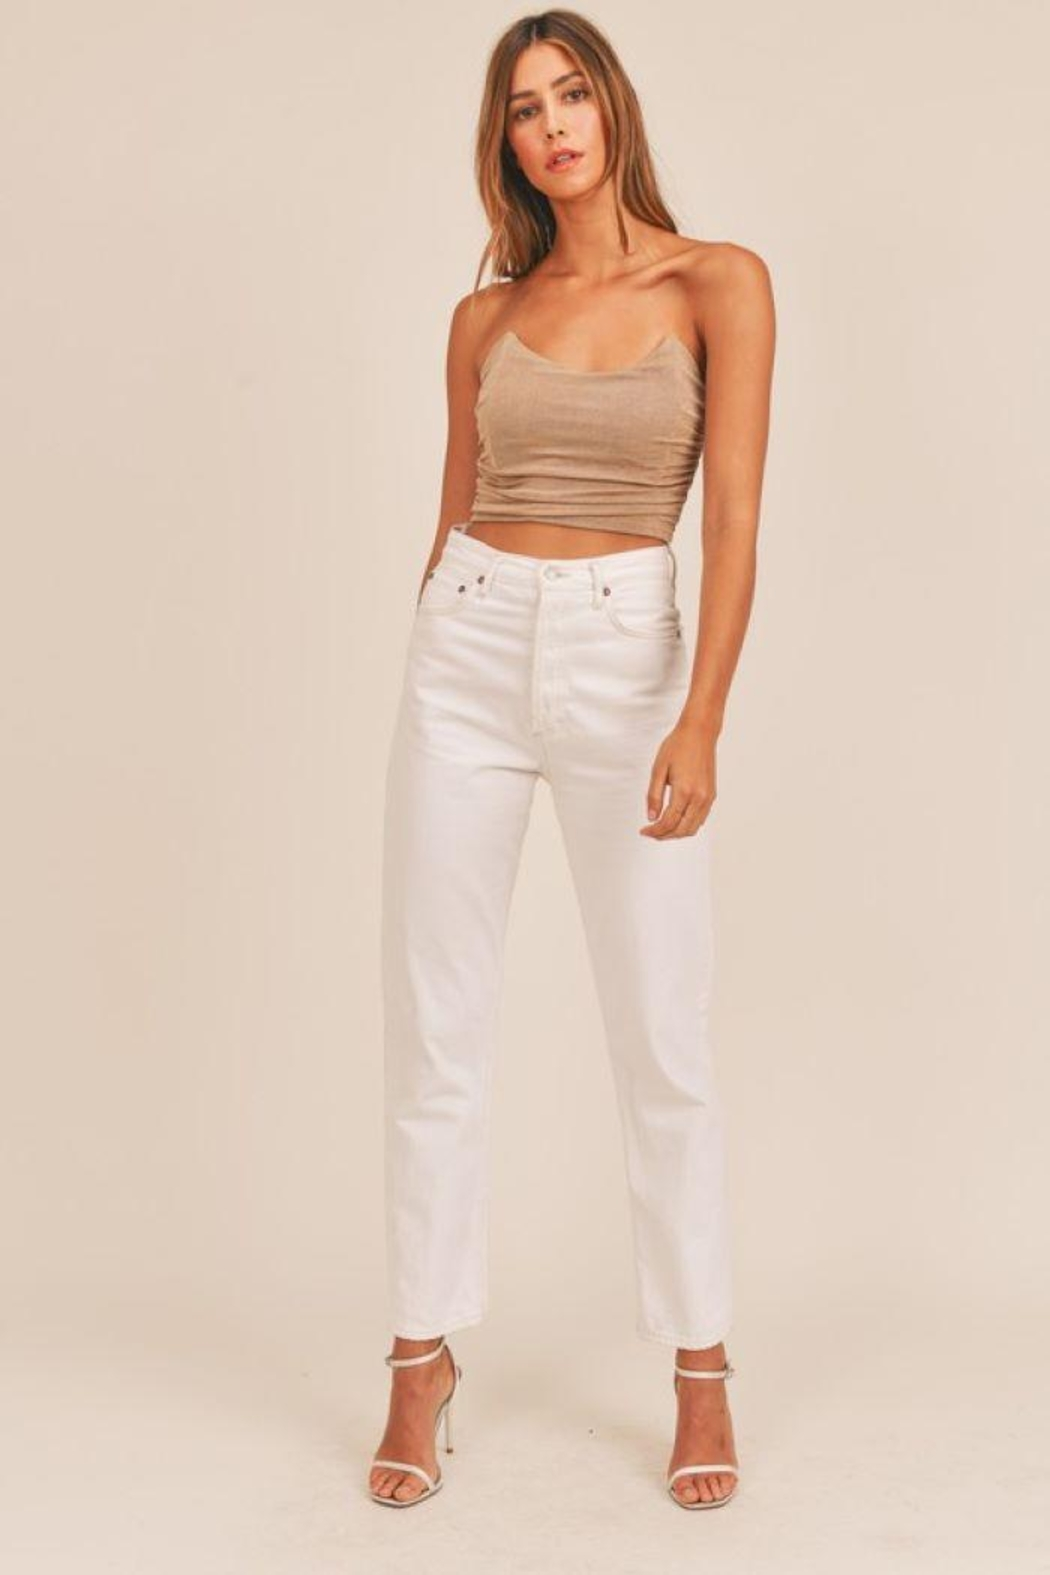 Mable Ruched Fitted Crop Top - Side Cropped Image